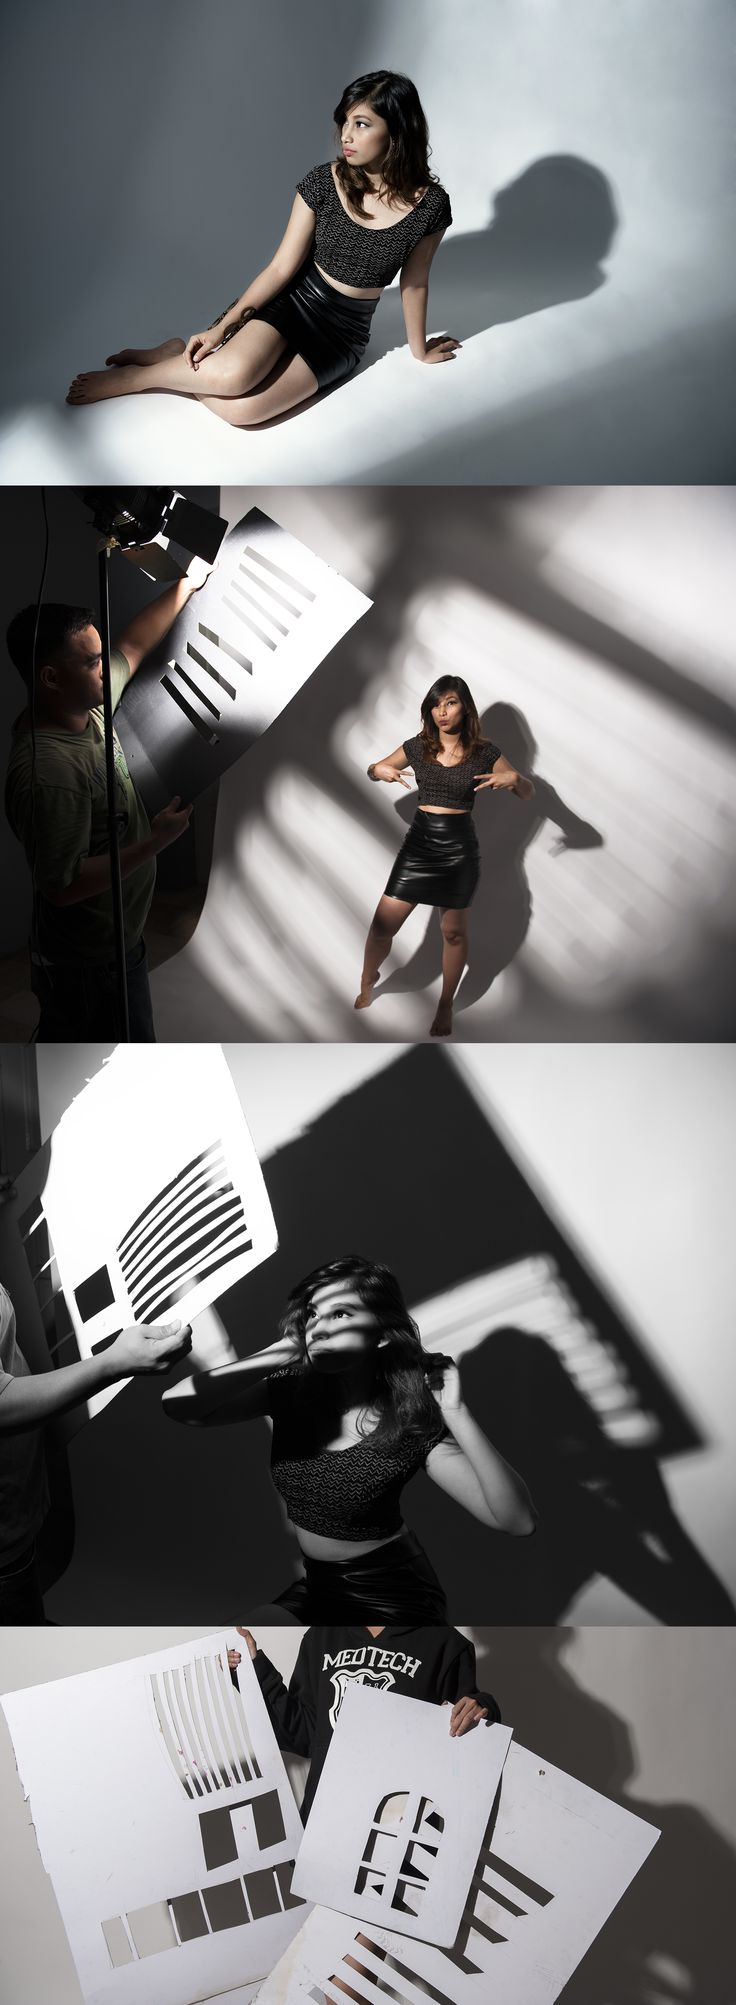 the use of gobos in your images, love the shadows they cast on the model and…